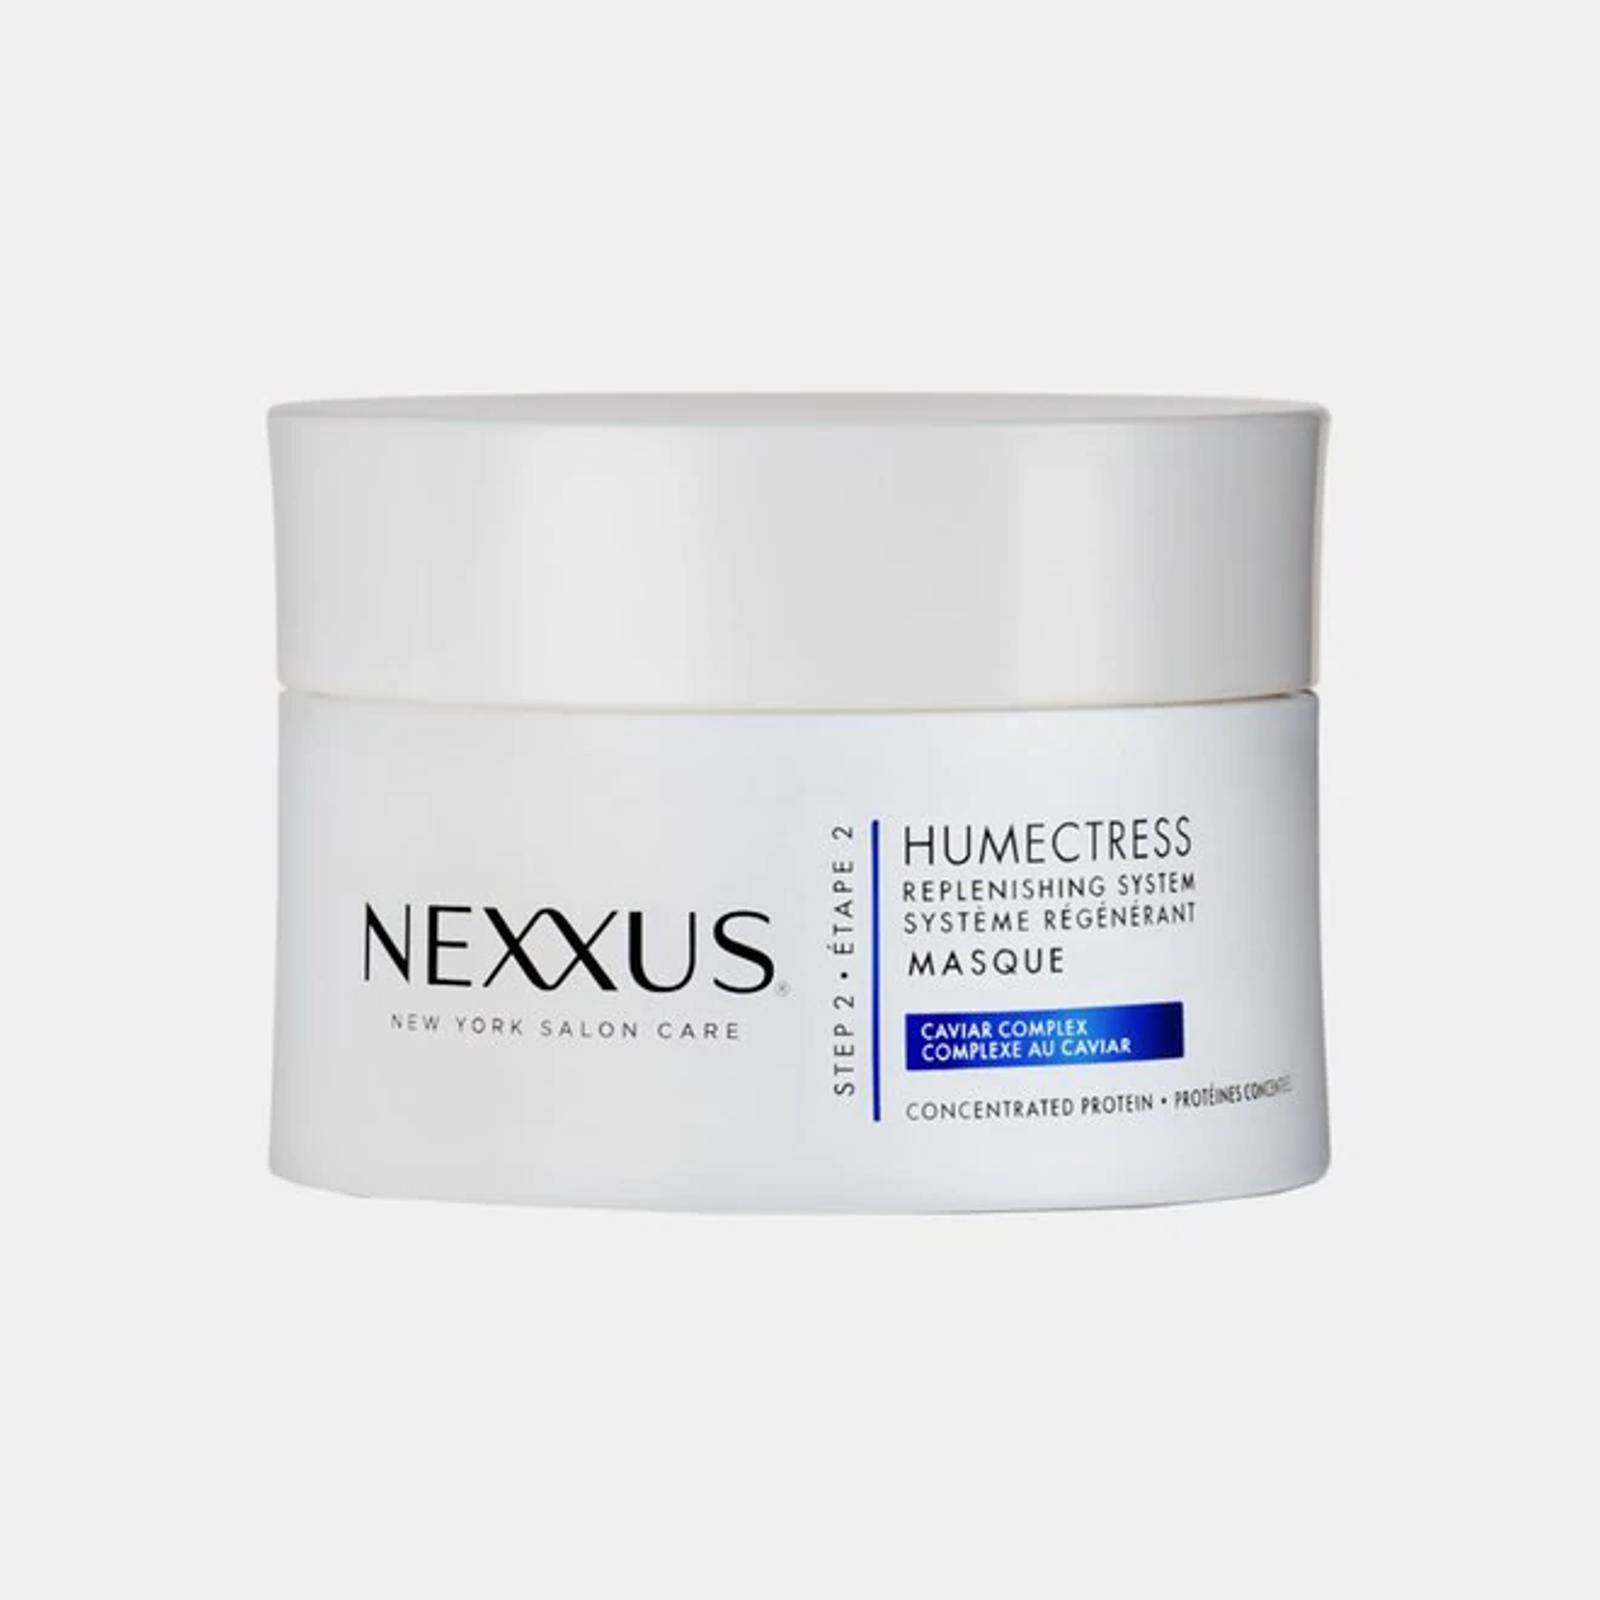 Image of Humectress Ultimate Moisture Masque Product